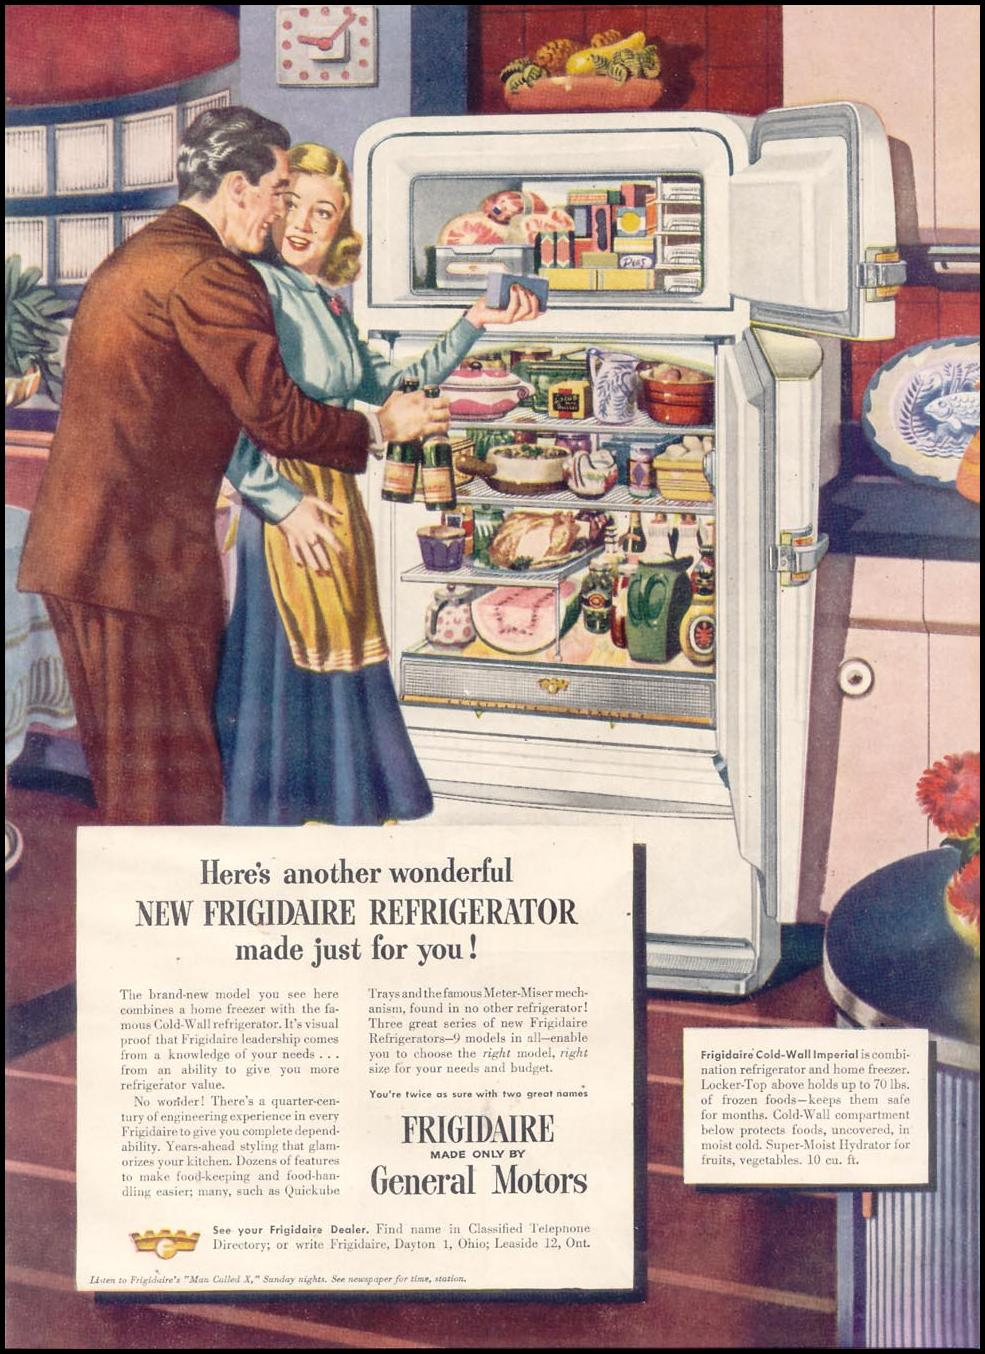 FRIGIDAIRE REFRIGERATORS GOOD HOUSEKEEPING 07/01/1948 p. 133